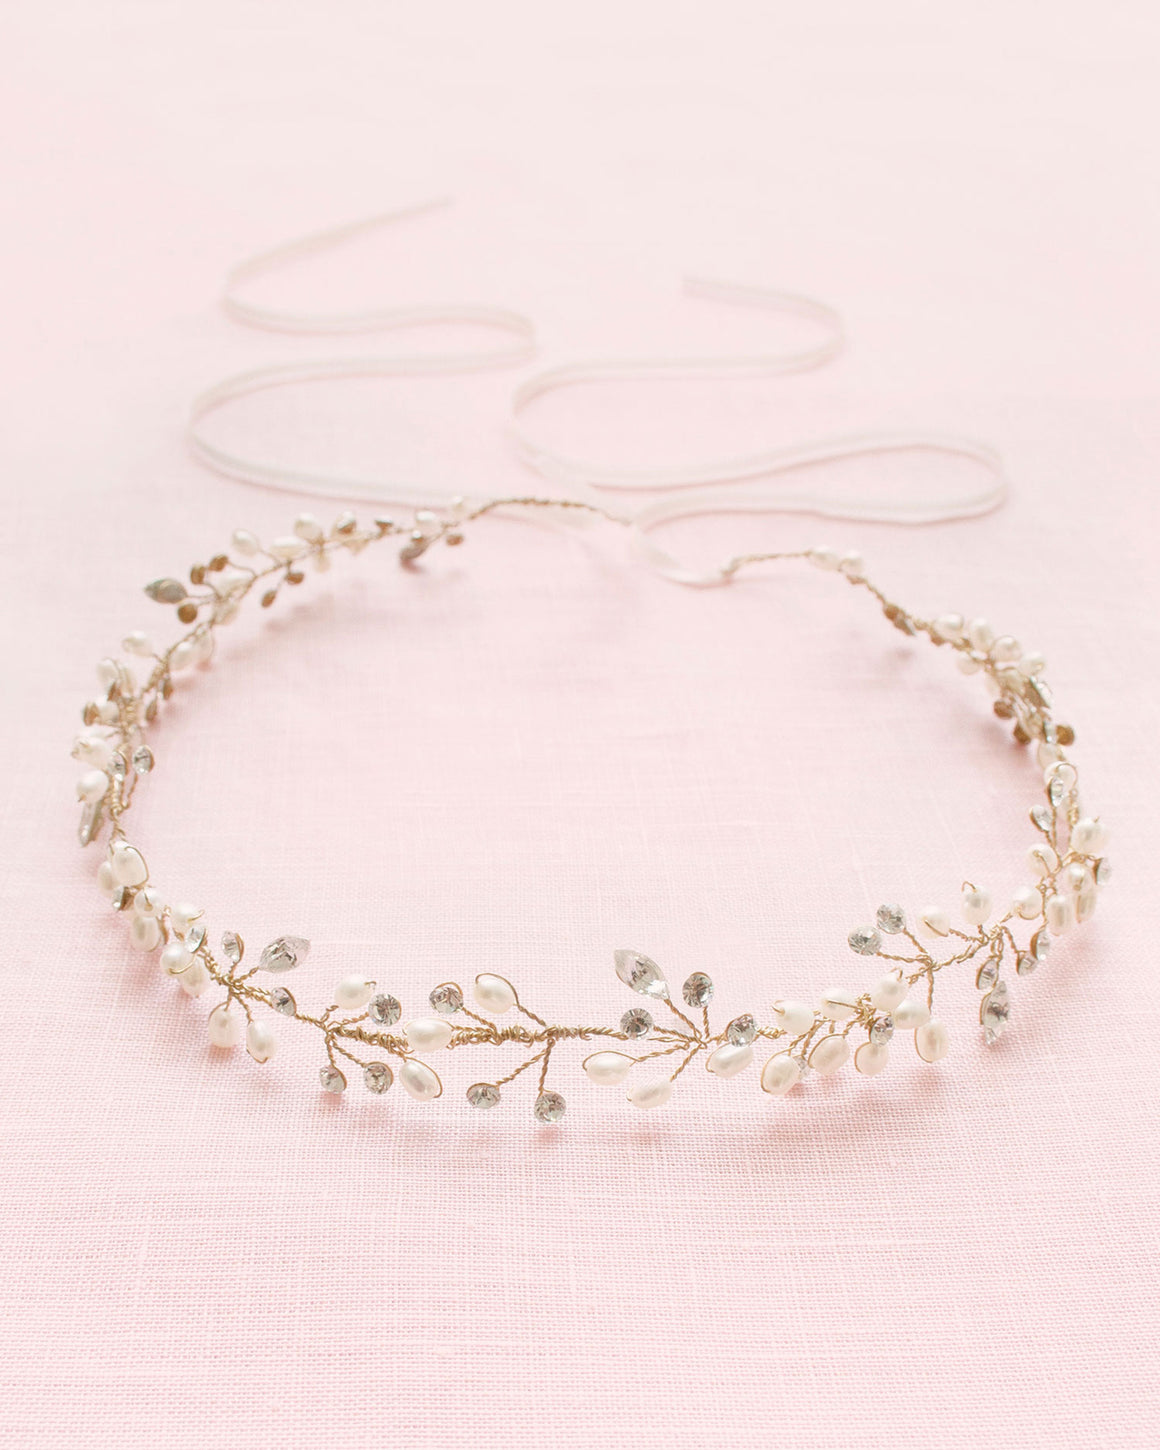 A delicate gold hair vine of Swarovski crystals and pearl clusters.